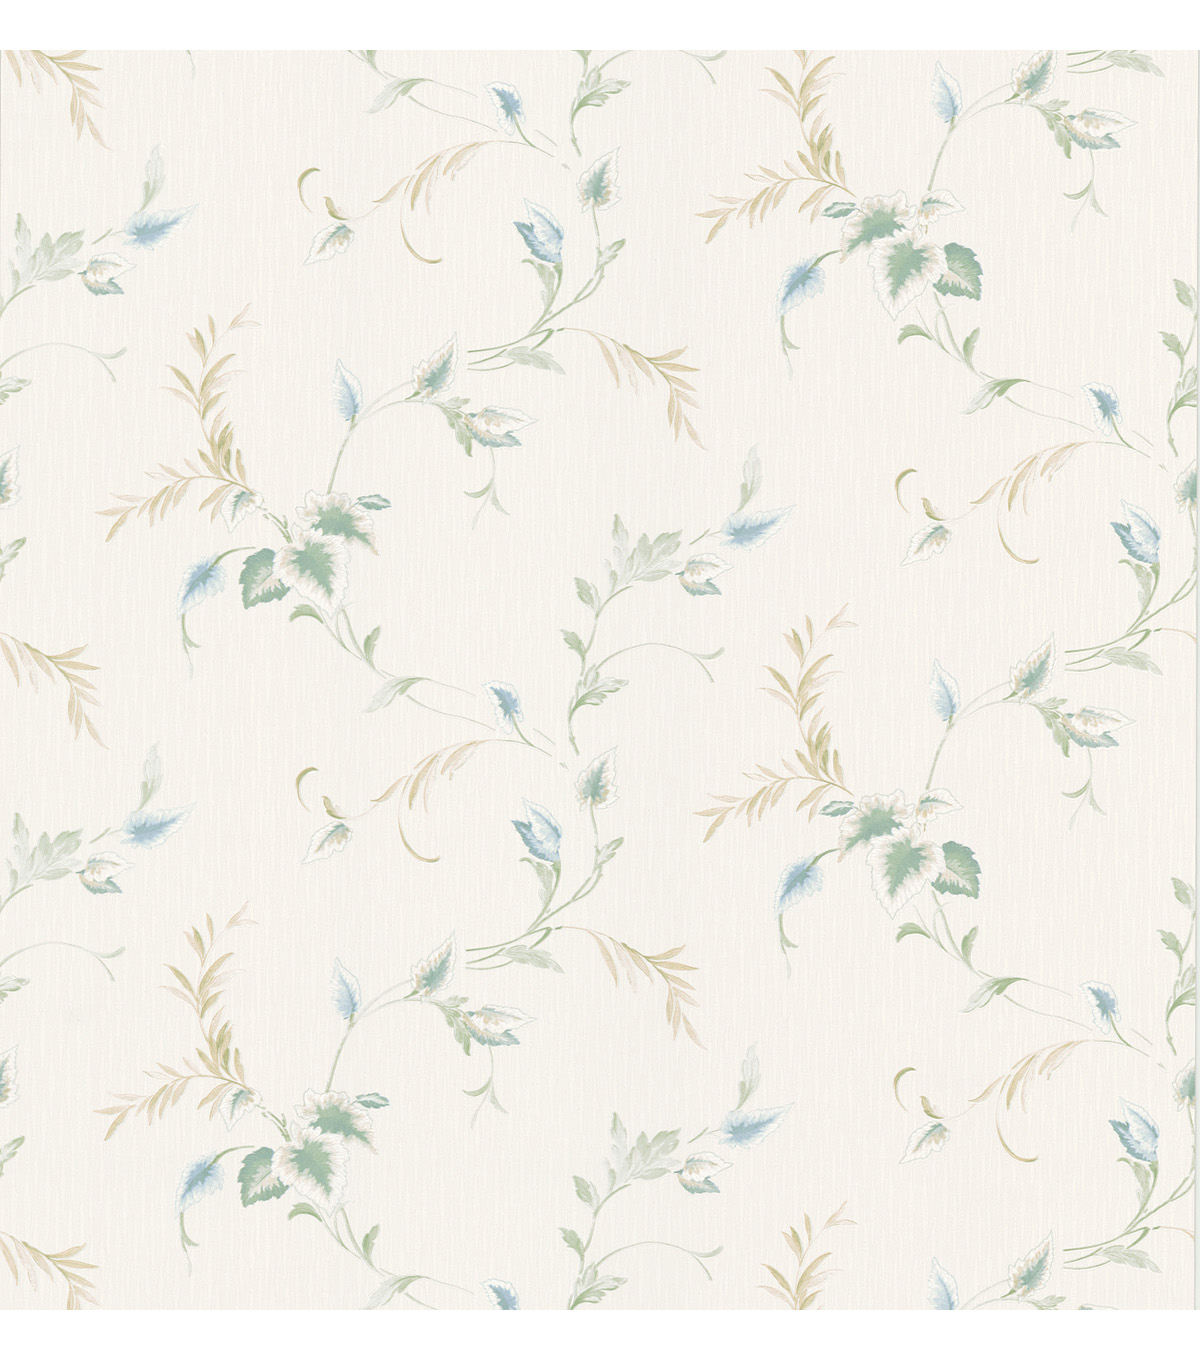 Shima Blue Trailing Leaves Wallpaper